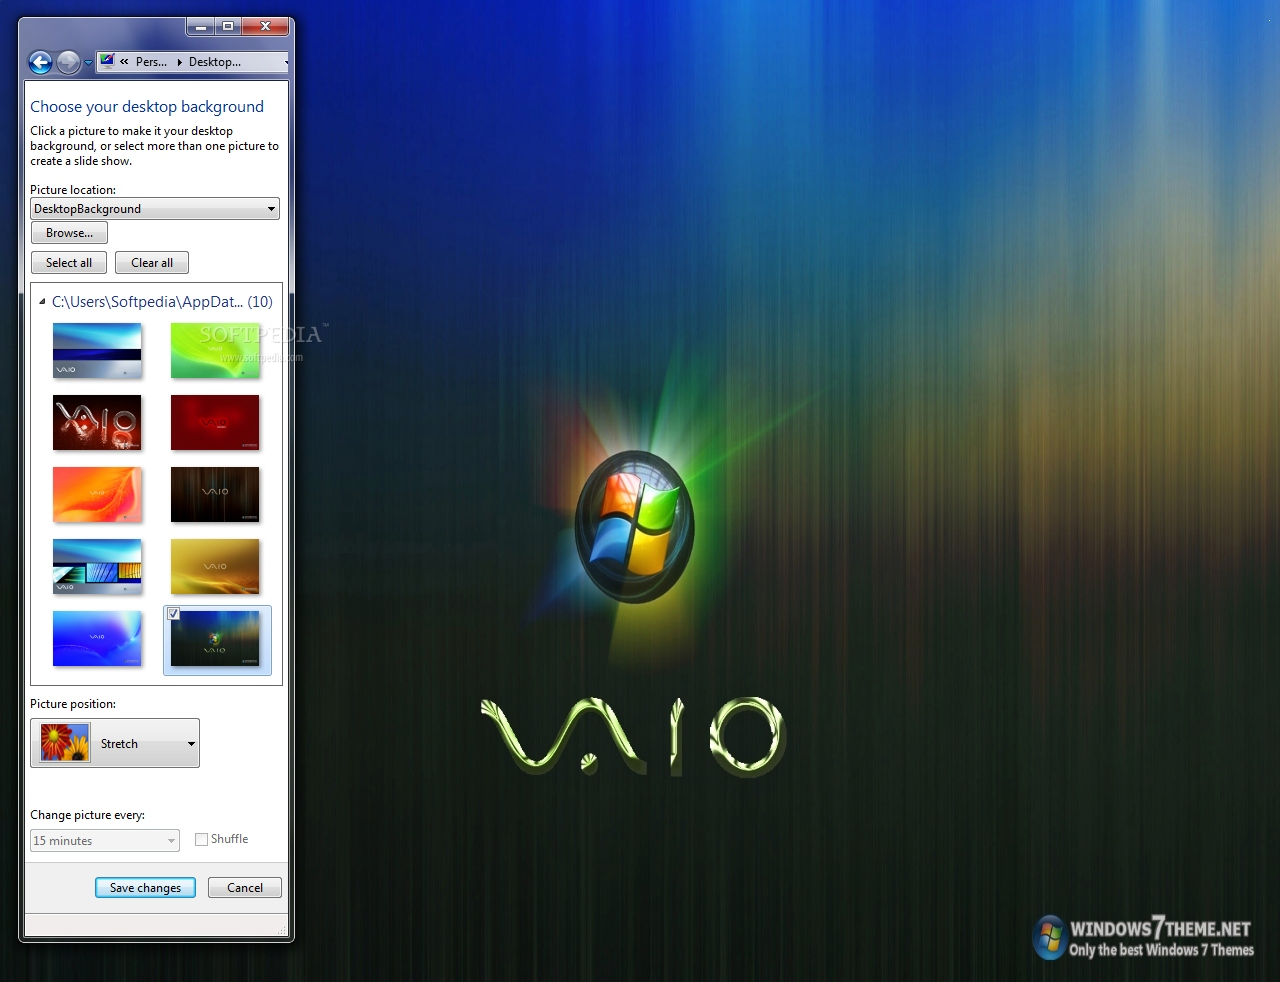 download sony vaio windows 7 theme 10